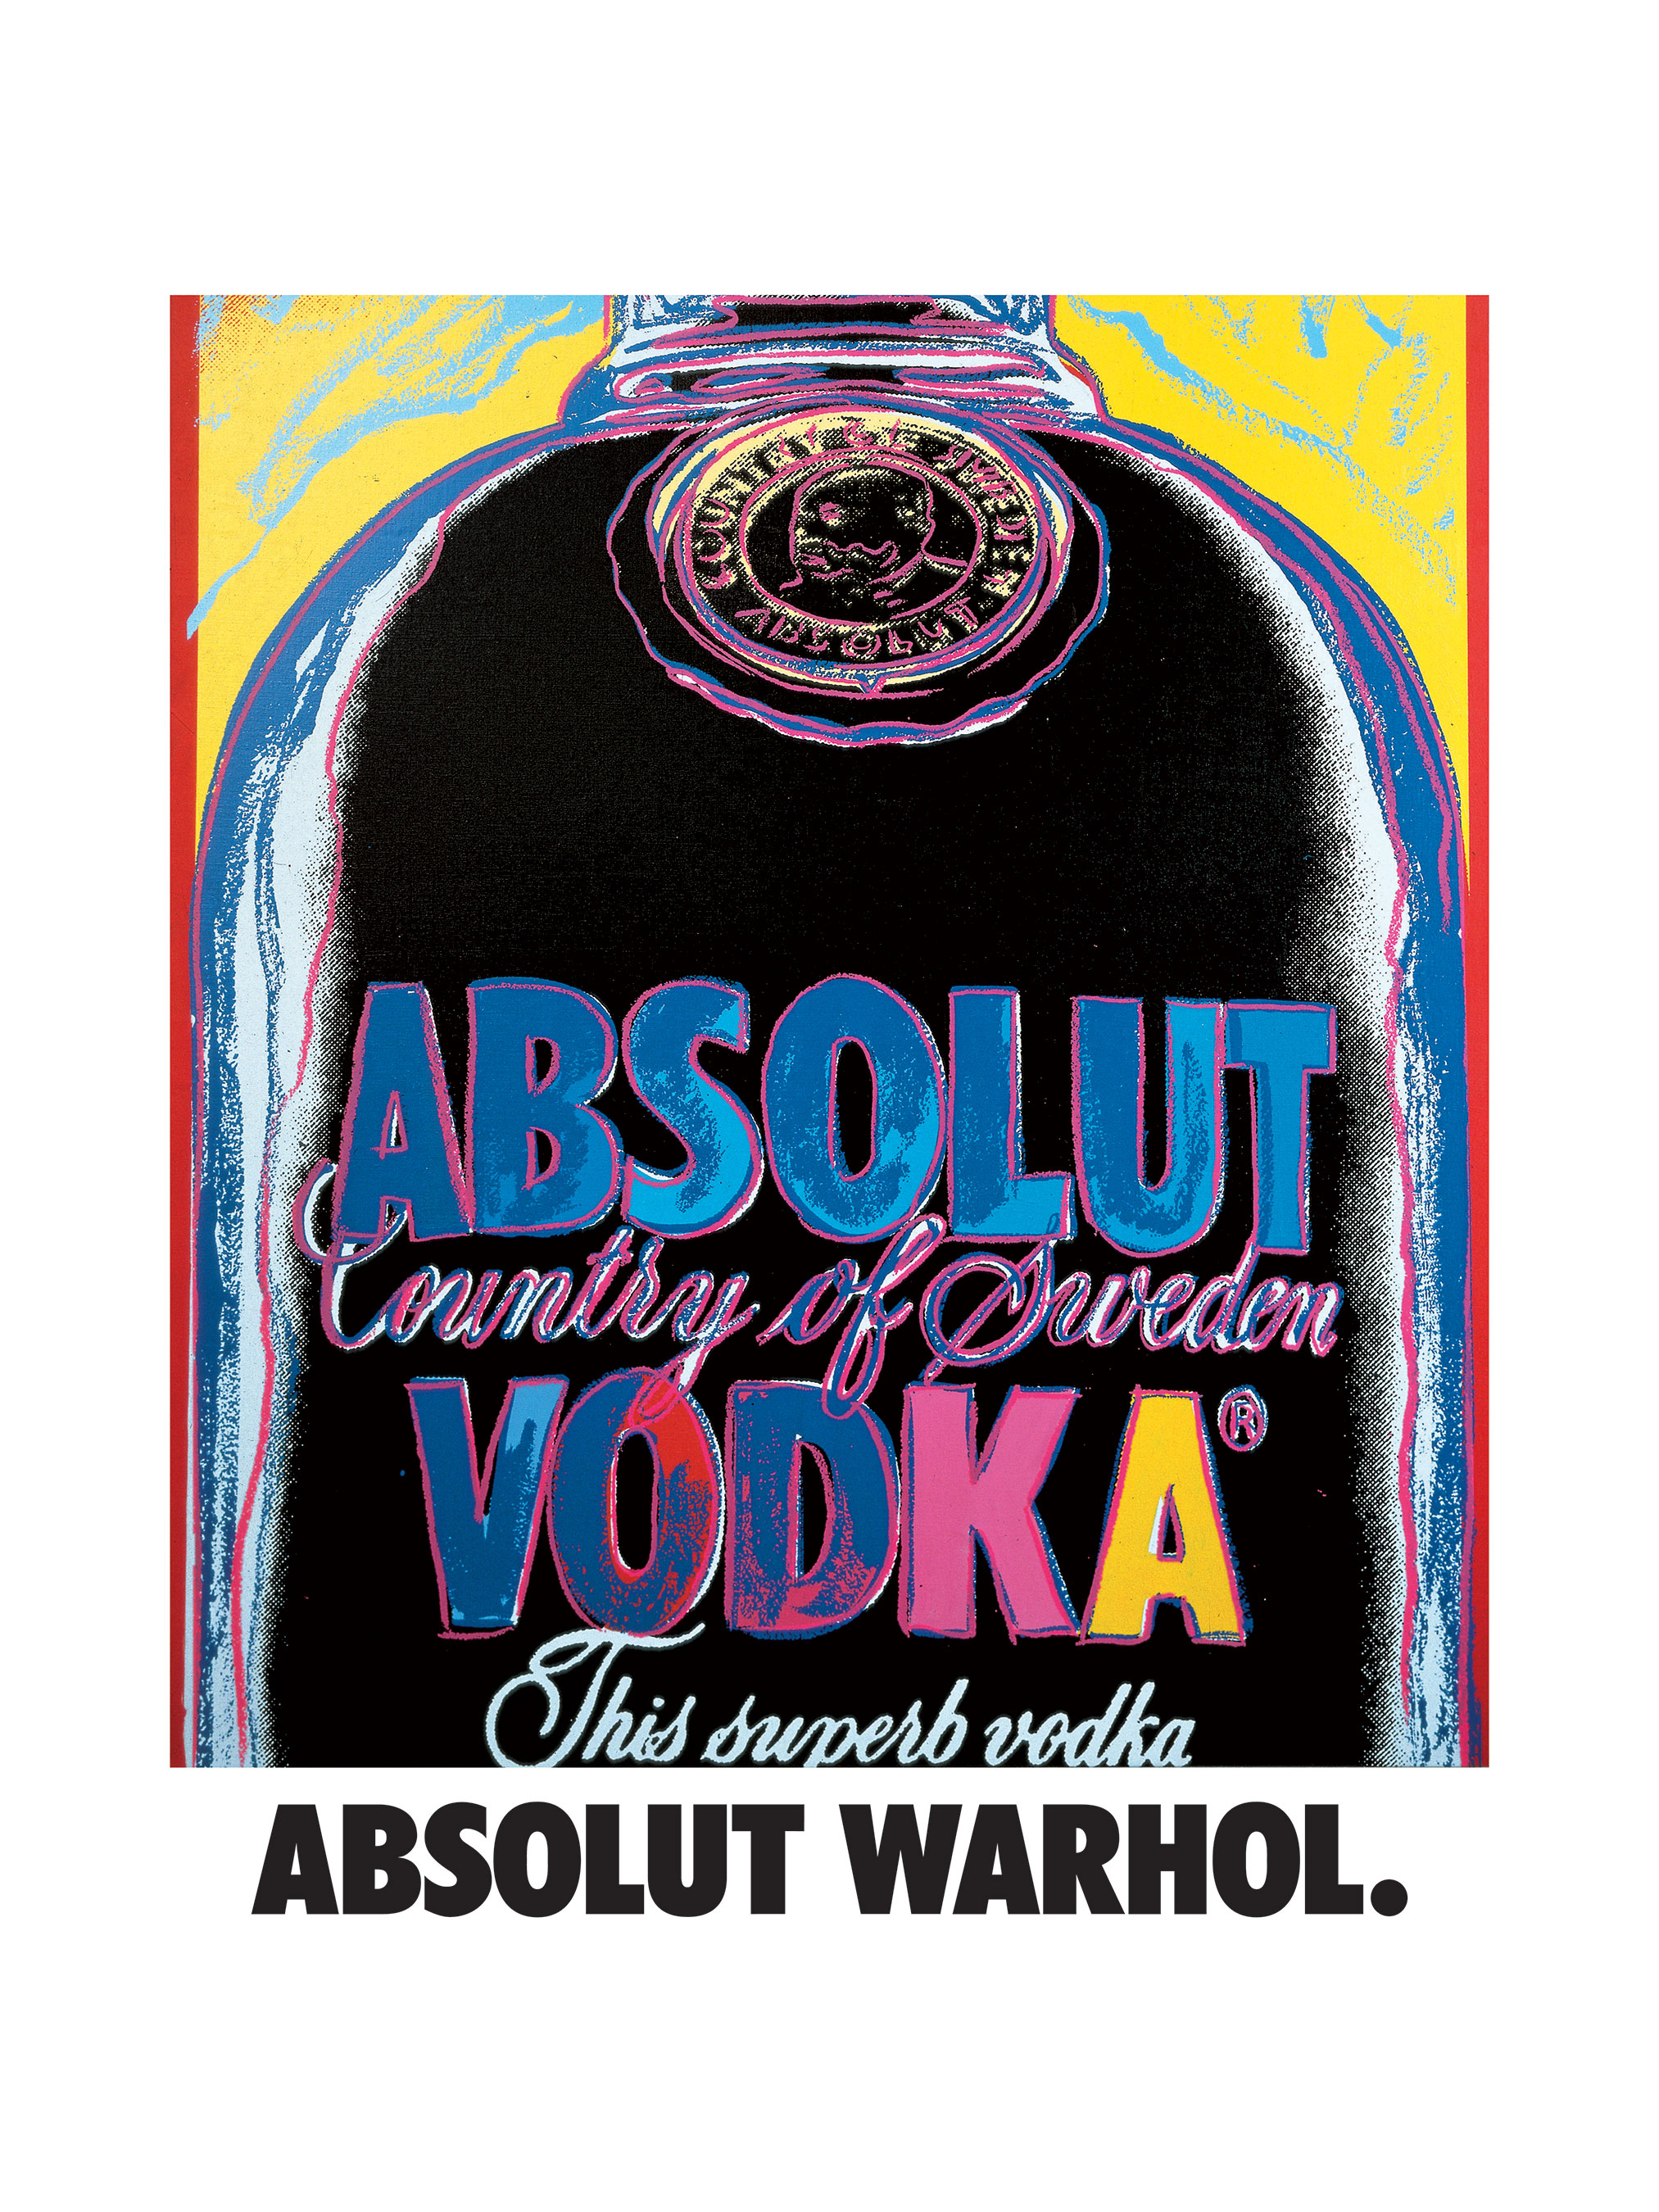 Photo: the original Warhol's artwork inspired by iconic Absolut bottle, 1986